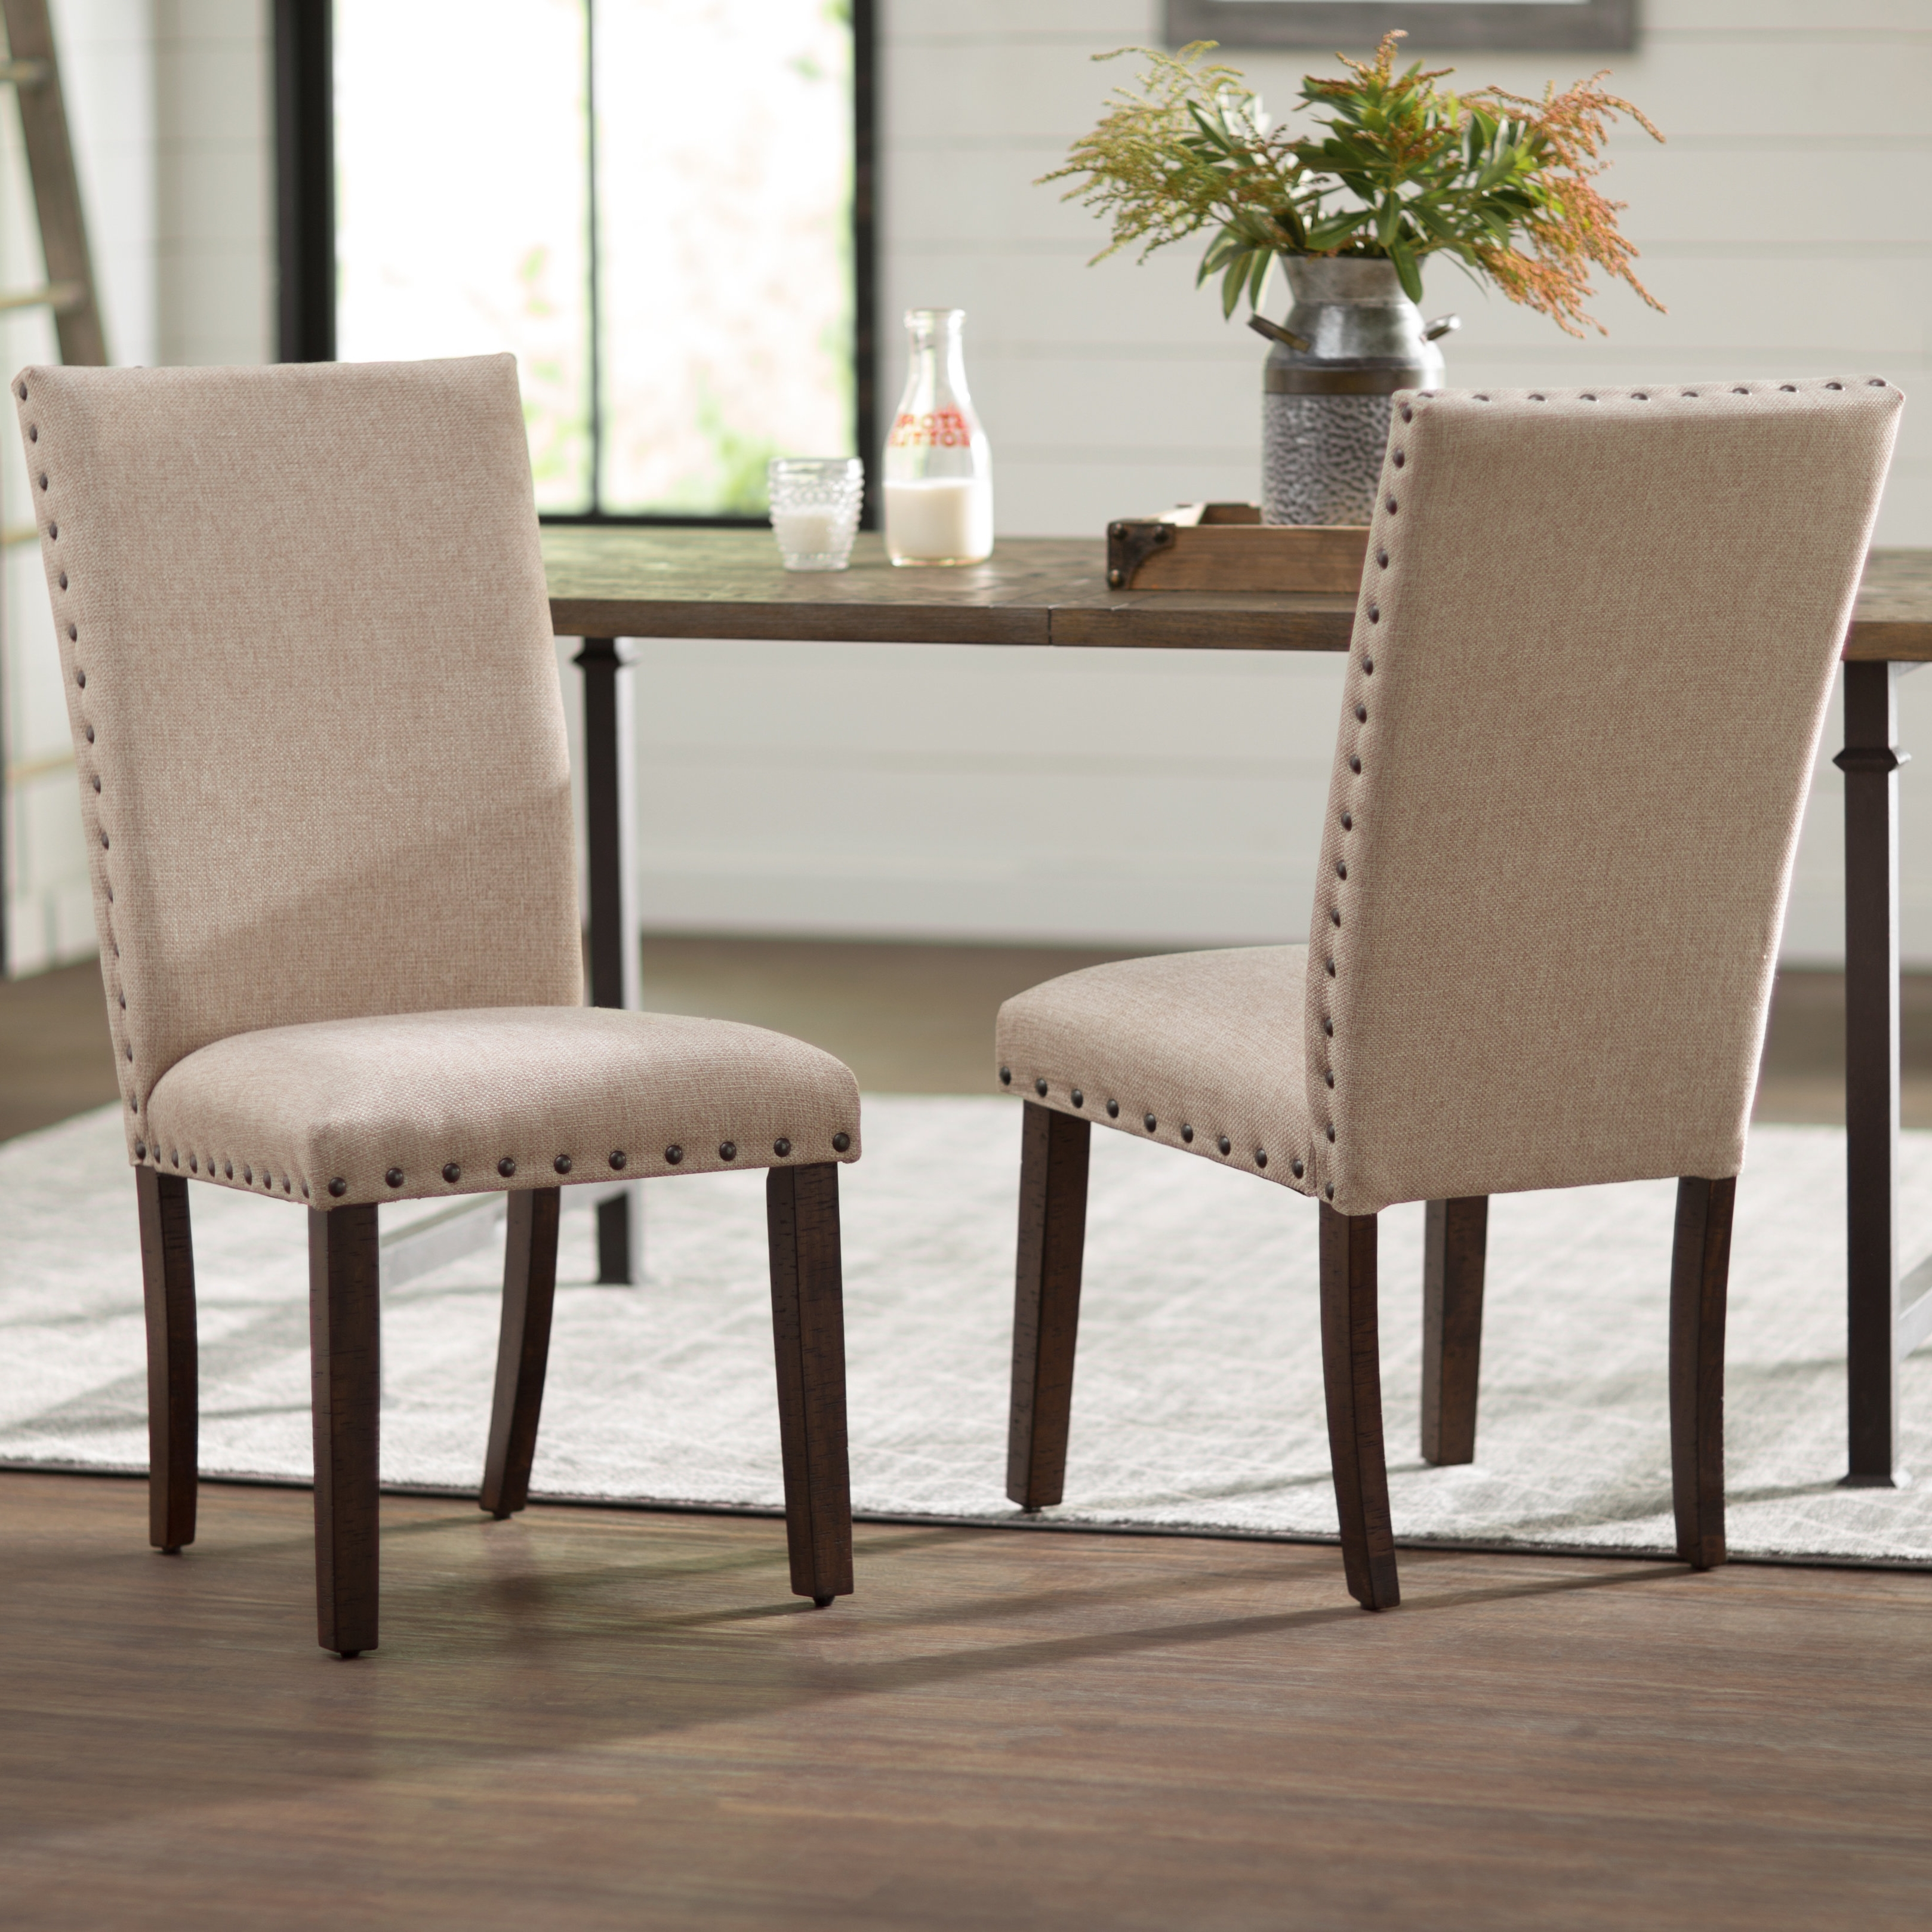 Laurel Foundry Modern Farmhouse Dearing Upholstered Dining Chair Inside Recent Nautical Silver Side Chairs (View 9 of 20)